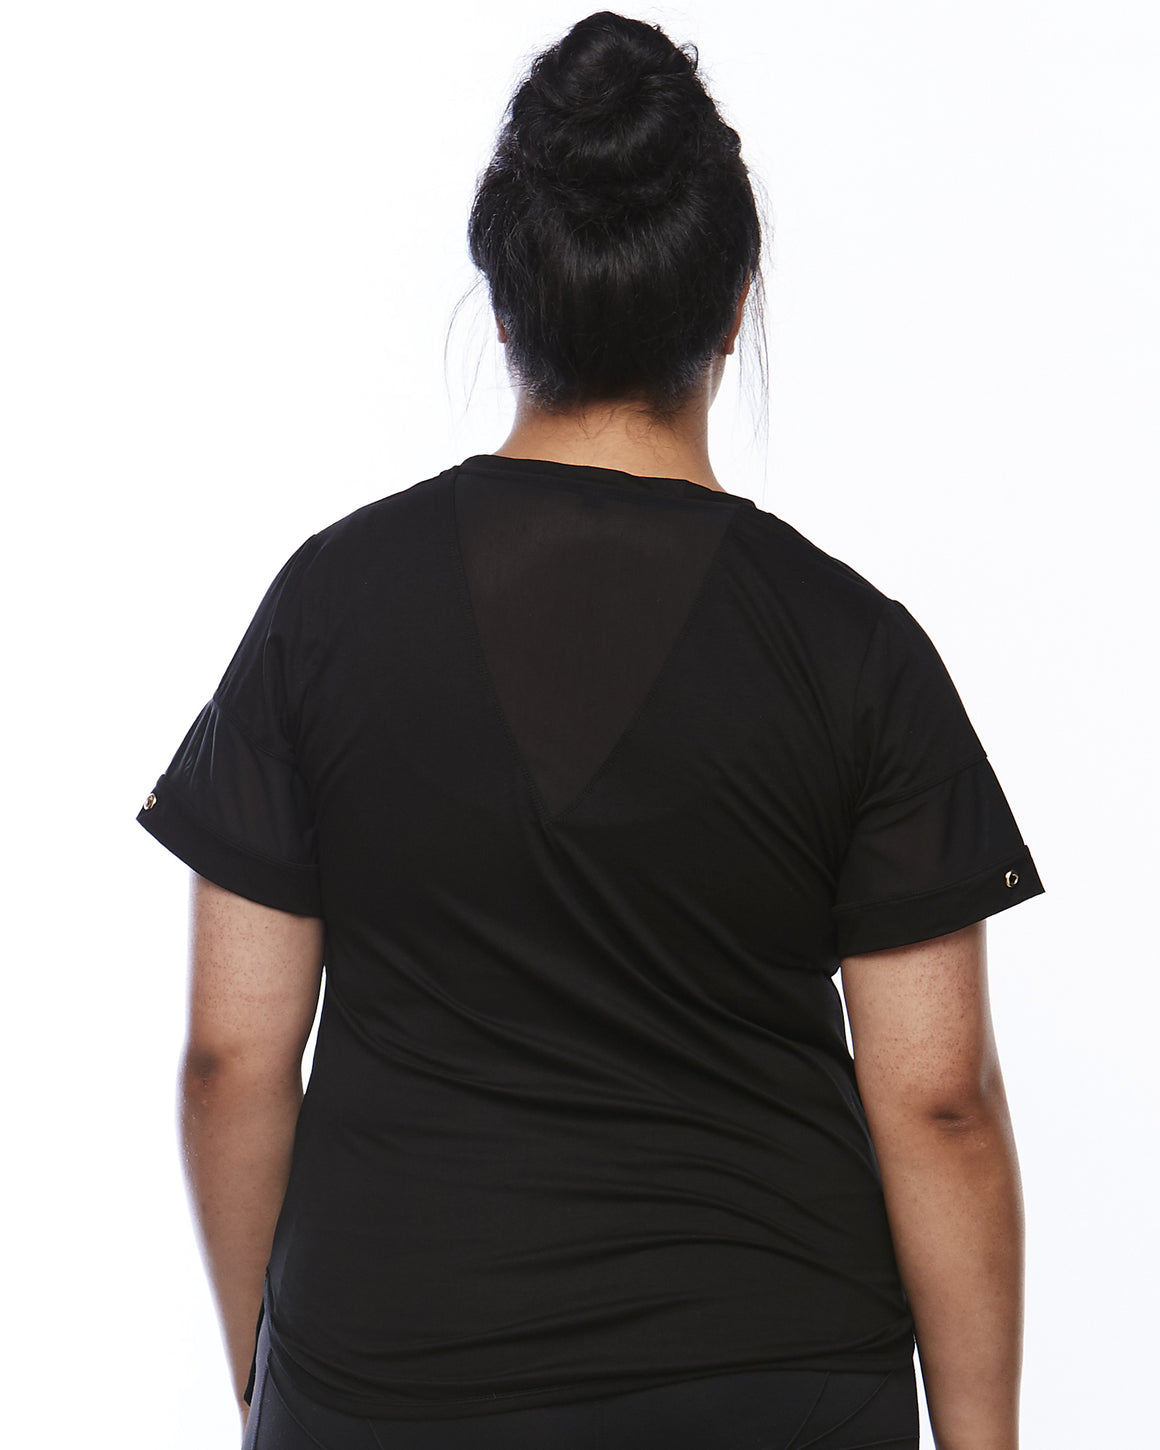 Back of the Serene Short Sleeve Sports Shirt by Lowanna Australia - Plus Size Sportswear